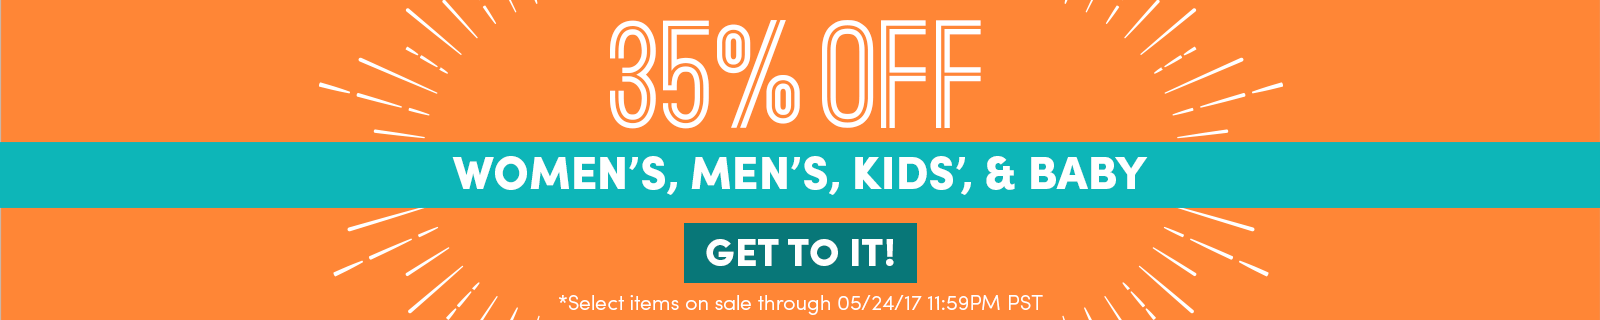 35% off Women's, Men's, and Kids' & Baby | Get To It!